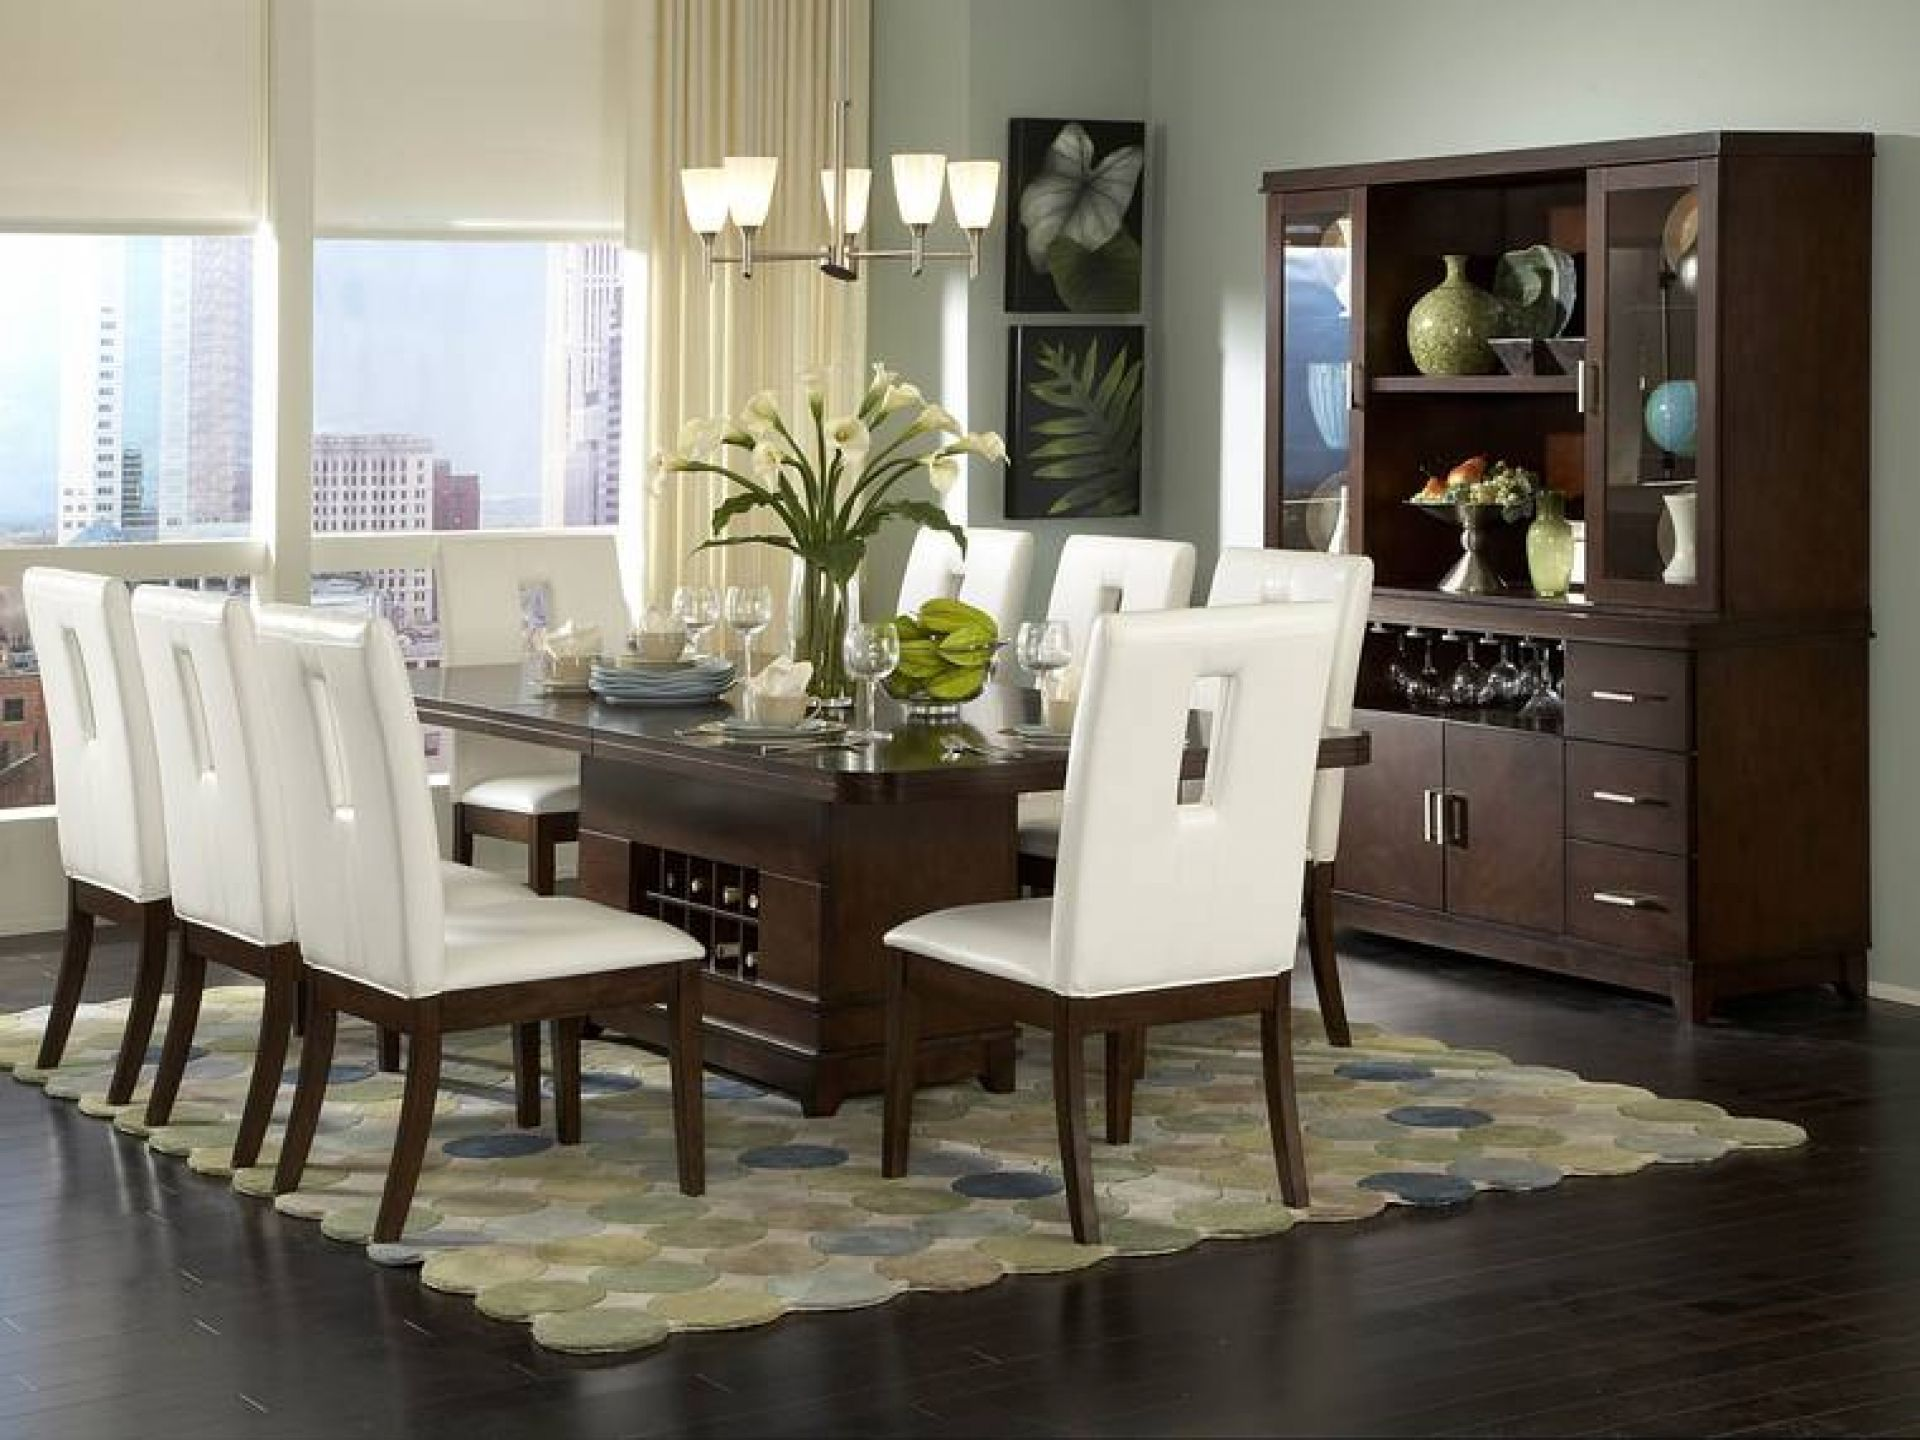 Modern Wood Dining Room Table Collection How To Give Your Home A Budget Friendly Makeover  Dining Room .